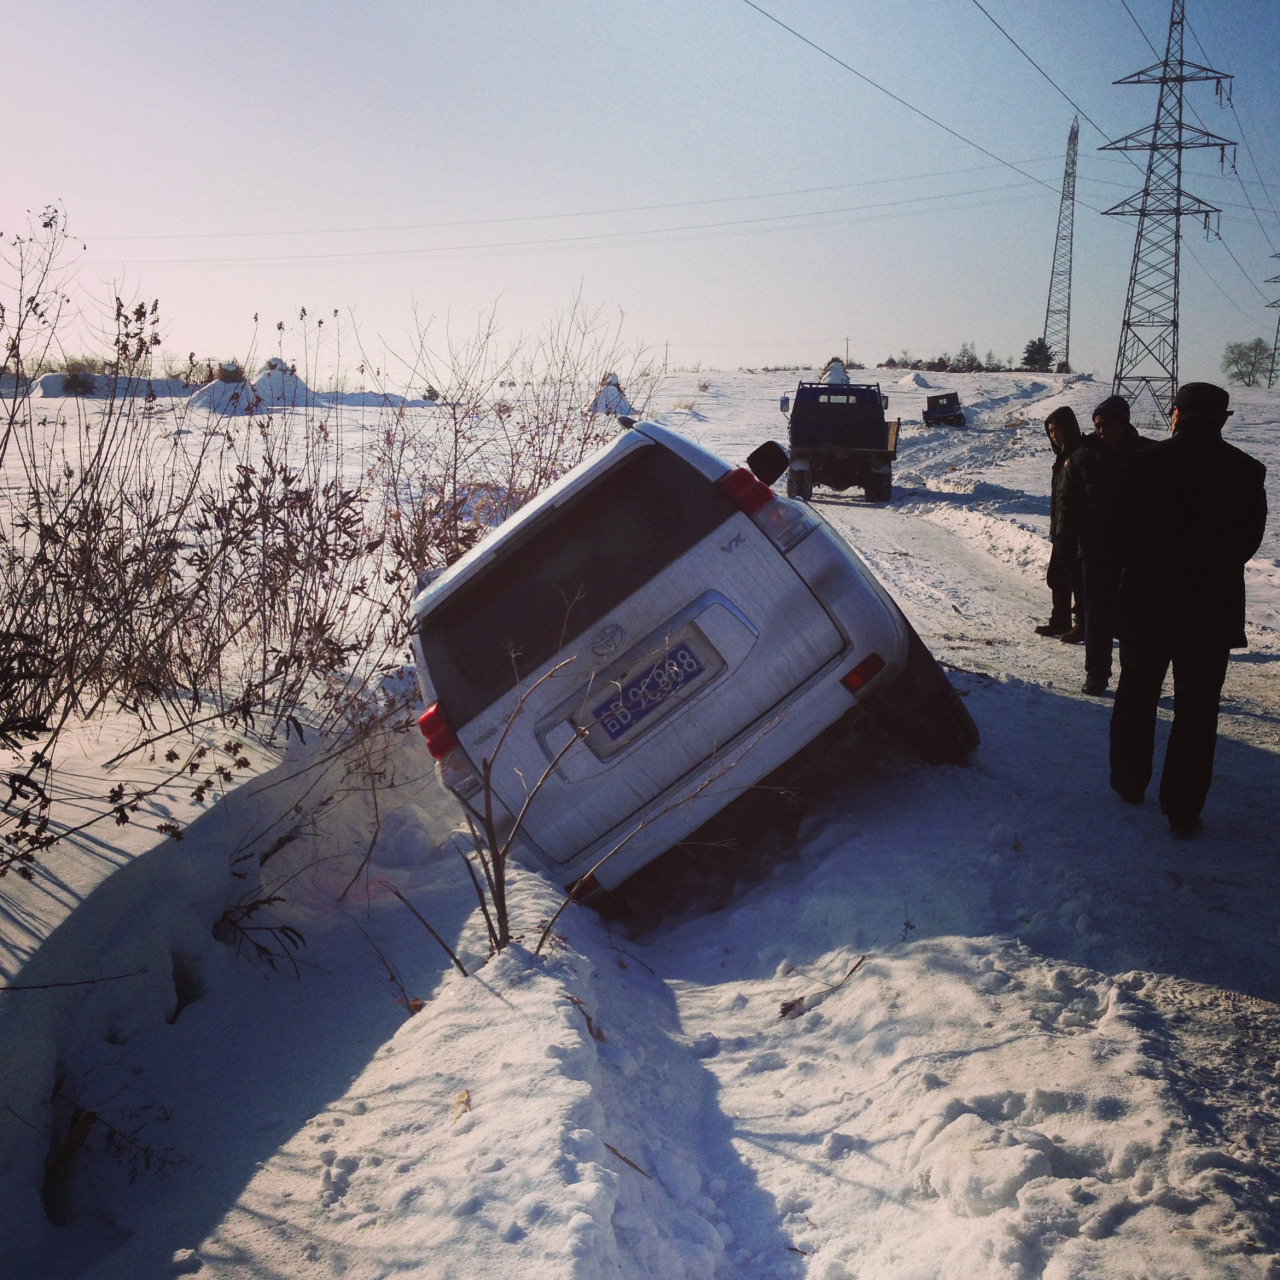 Getting there was a struggle. Our car fell into a ditch on the way there but everyone was OK!